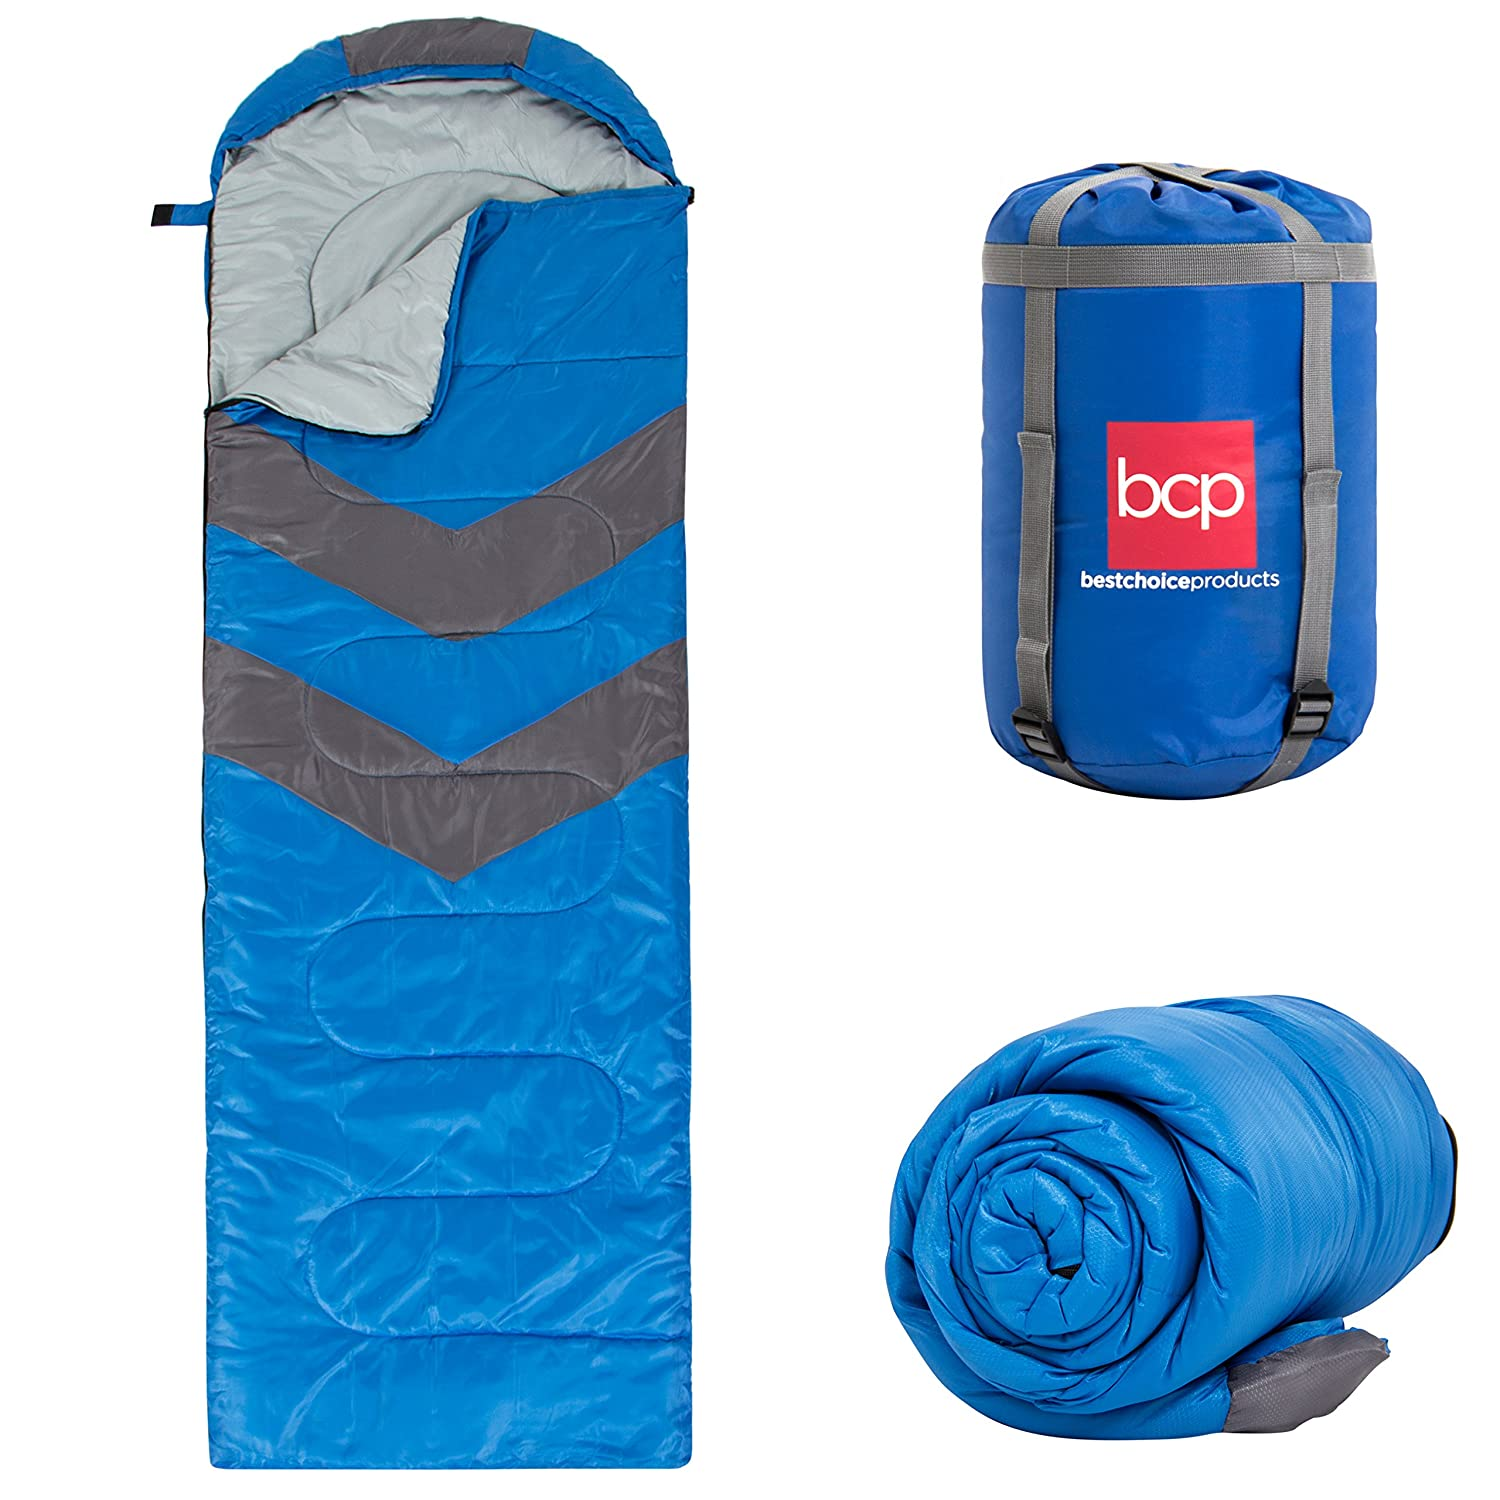 Best Choice Products 4-Season 20 F Envelope Sleeping Bag w Carrying Case, Weather-Resistant Material